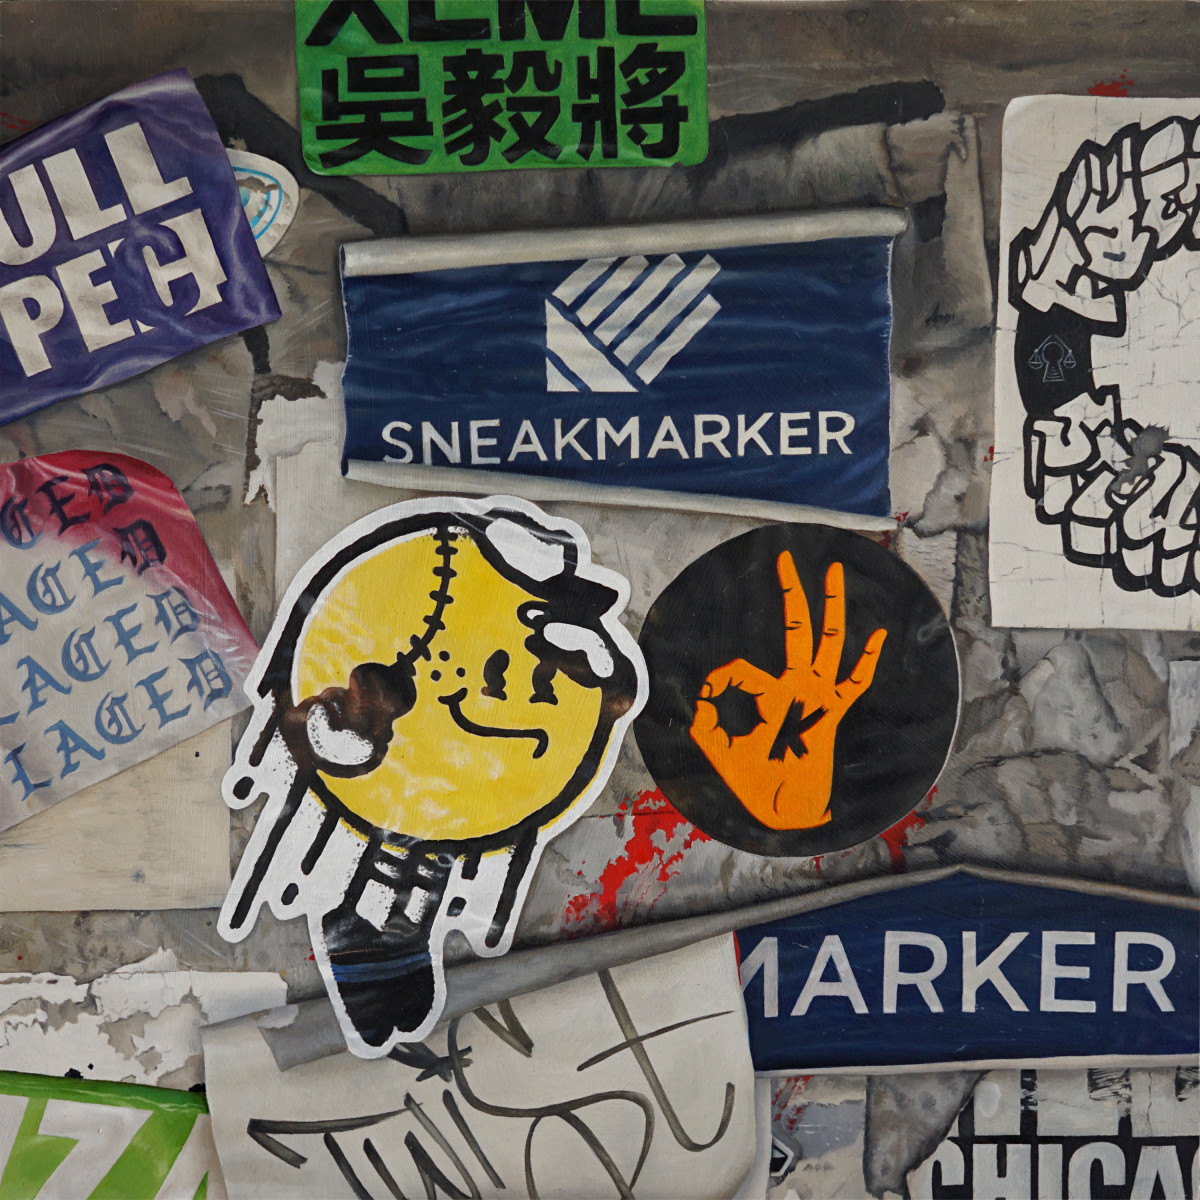 Sneakmarker by Daevid Anderson